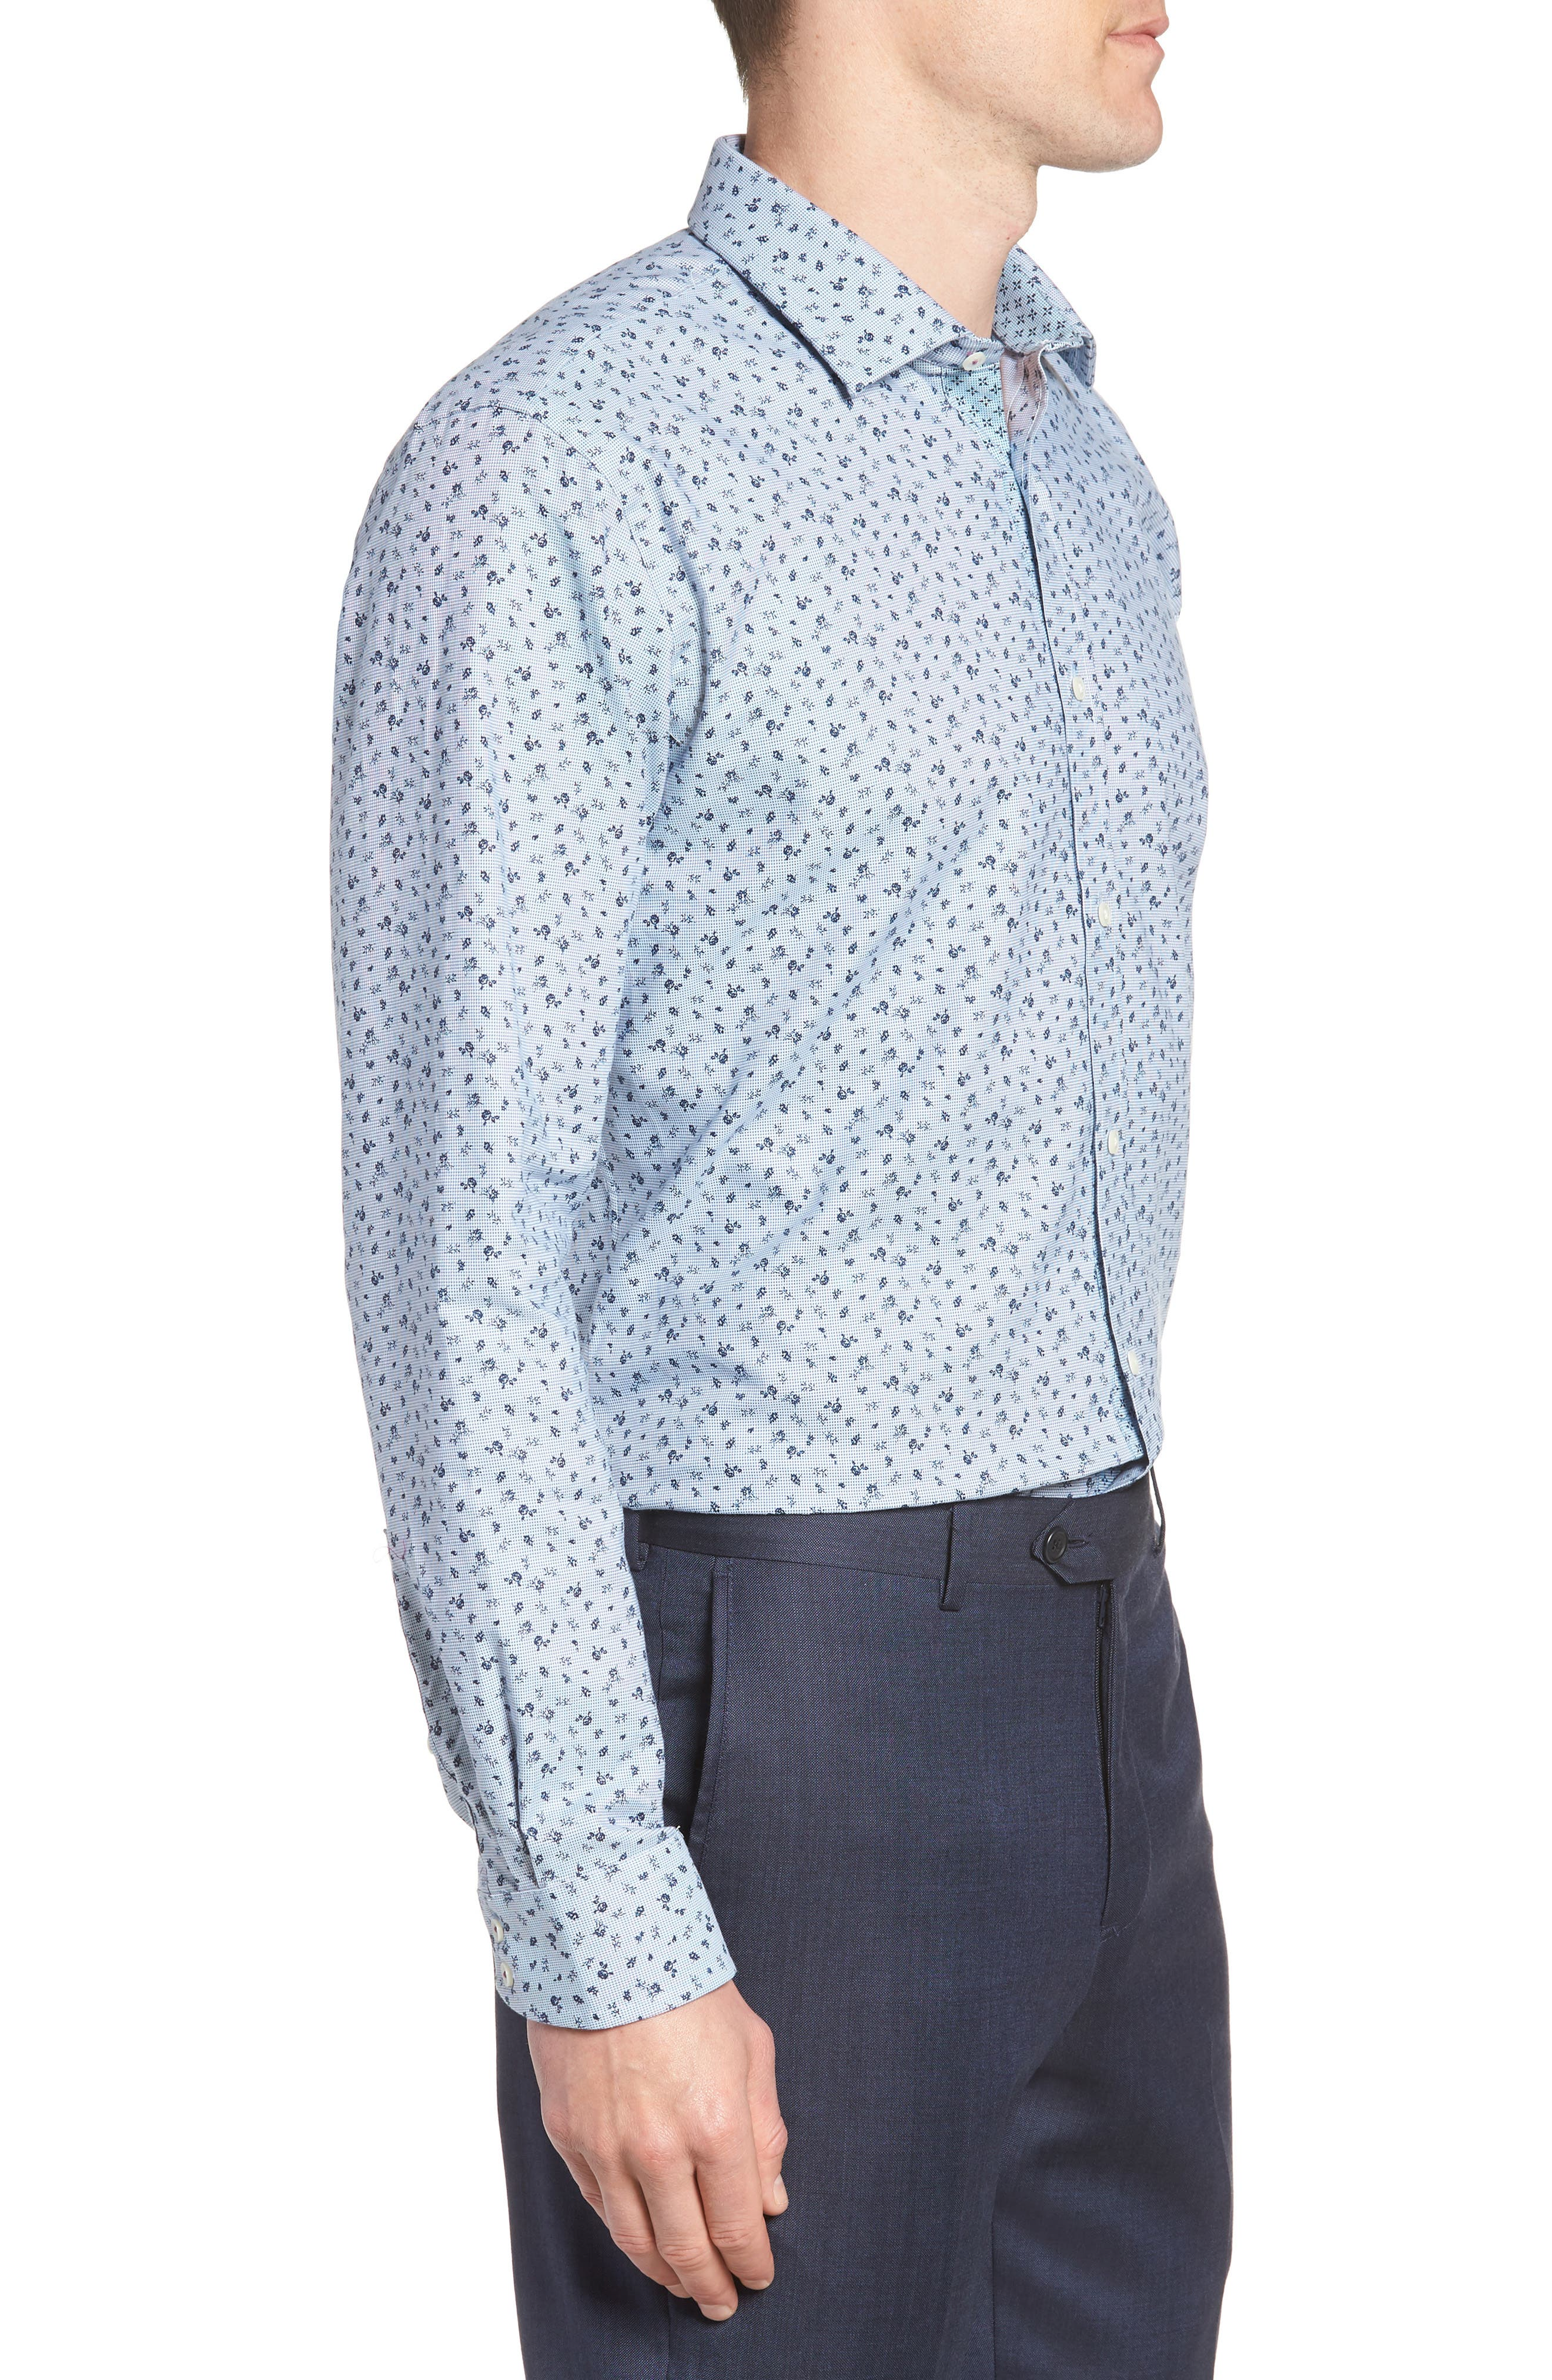 Chardo Trim Fit Floral Dress Shirt,                             Alternate thumbnail 4, color,                             030